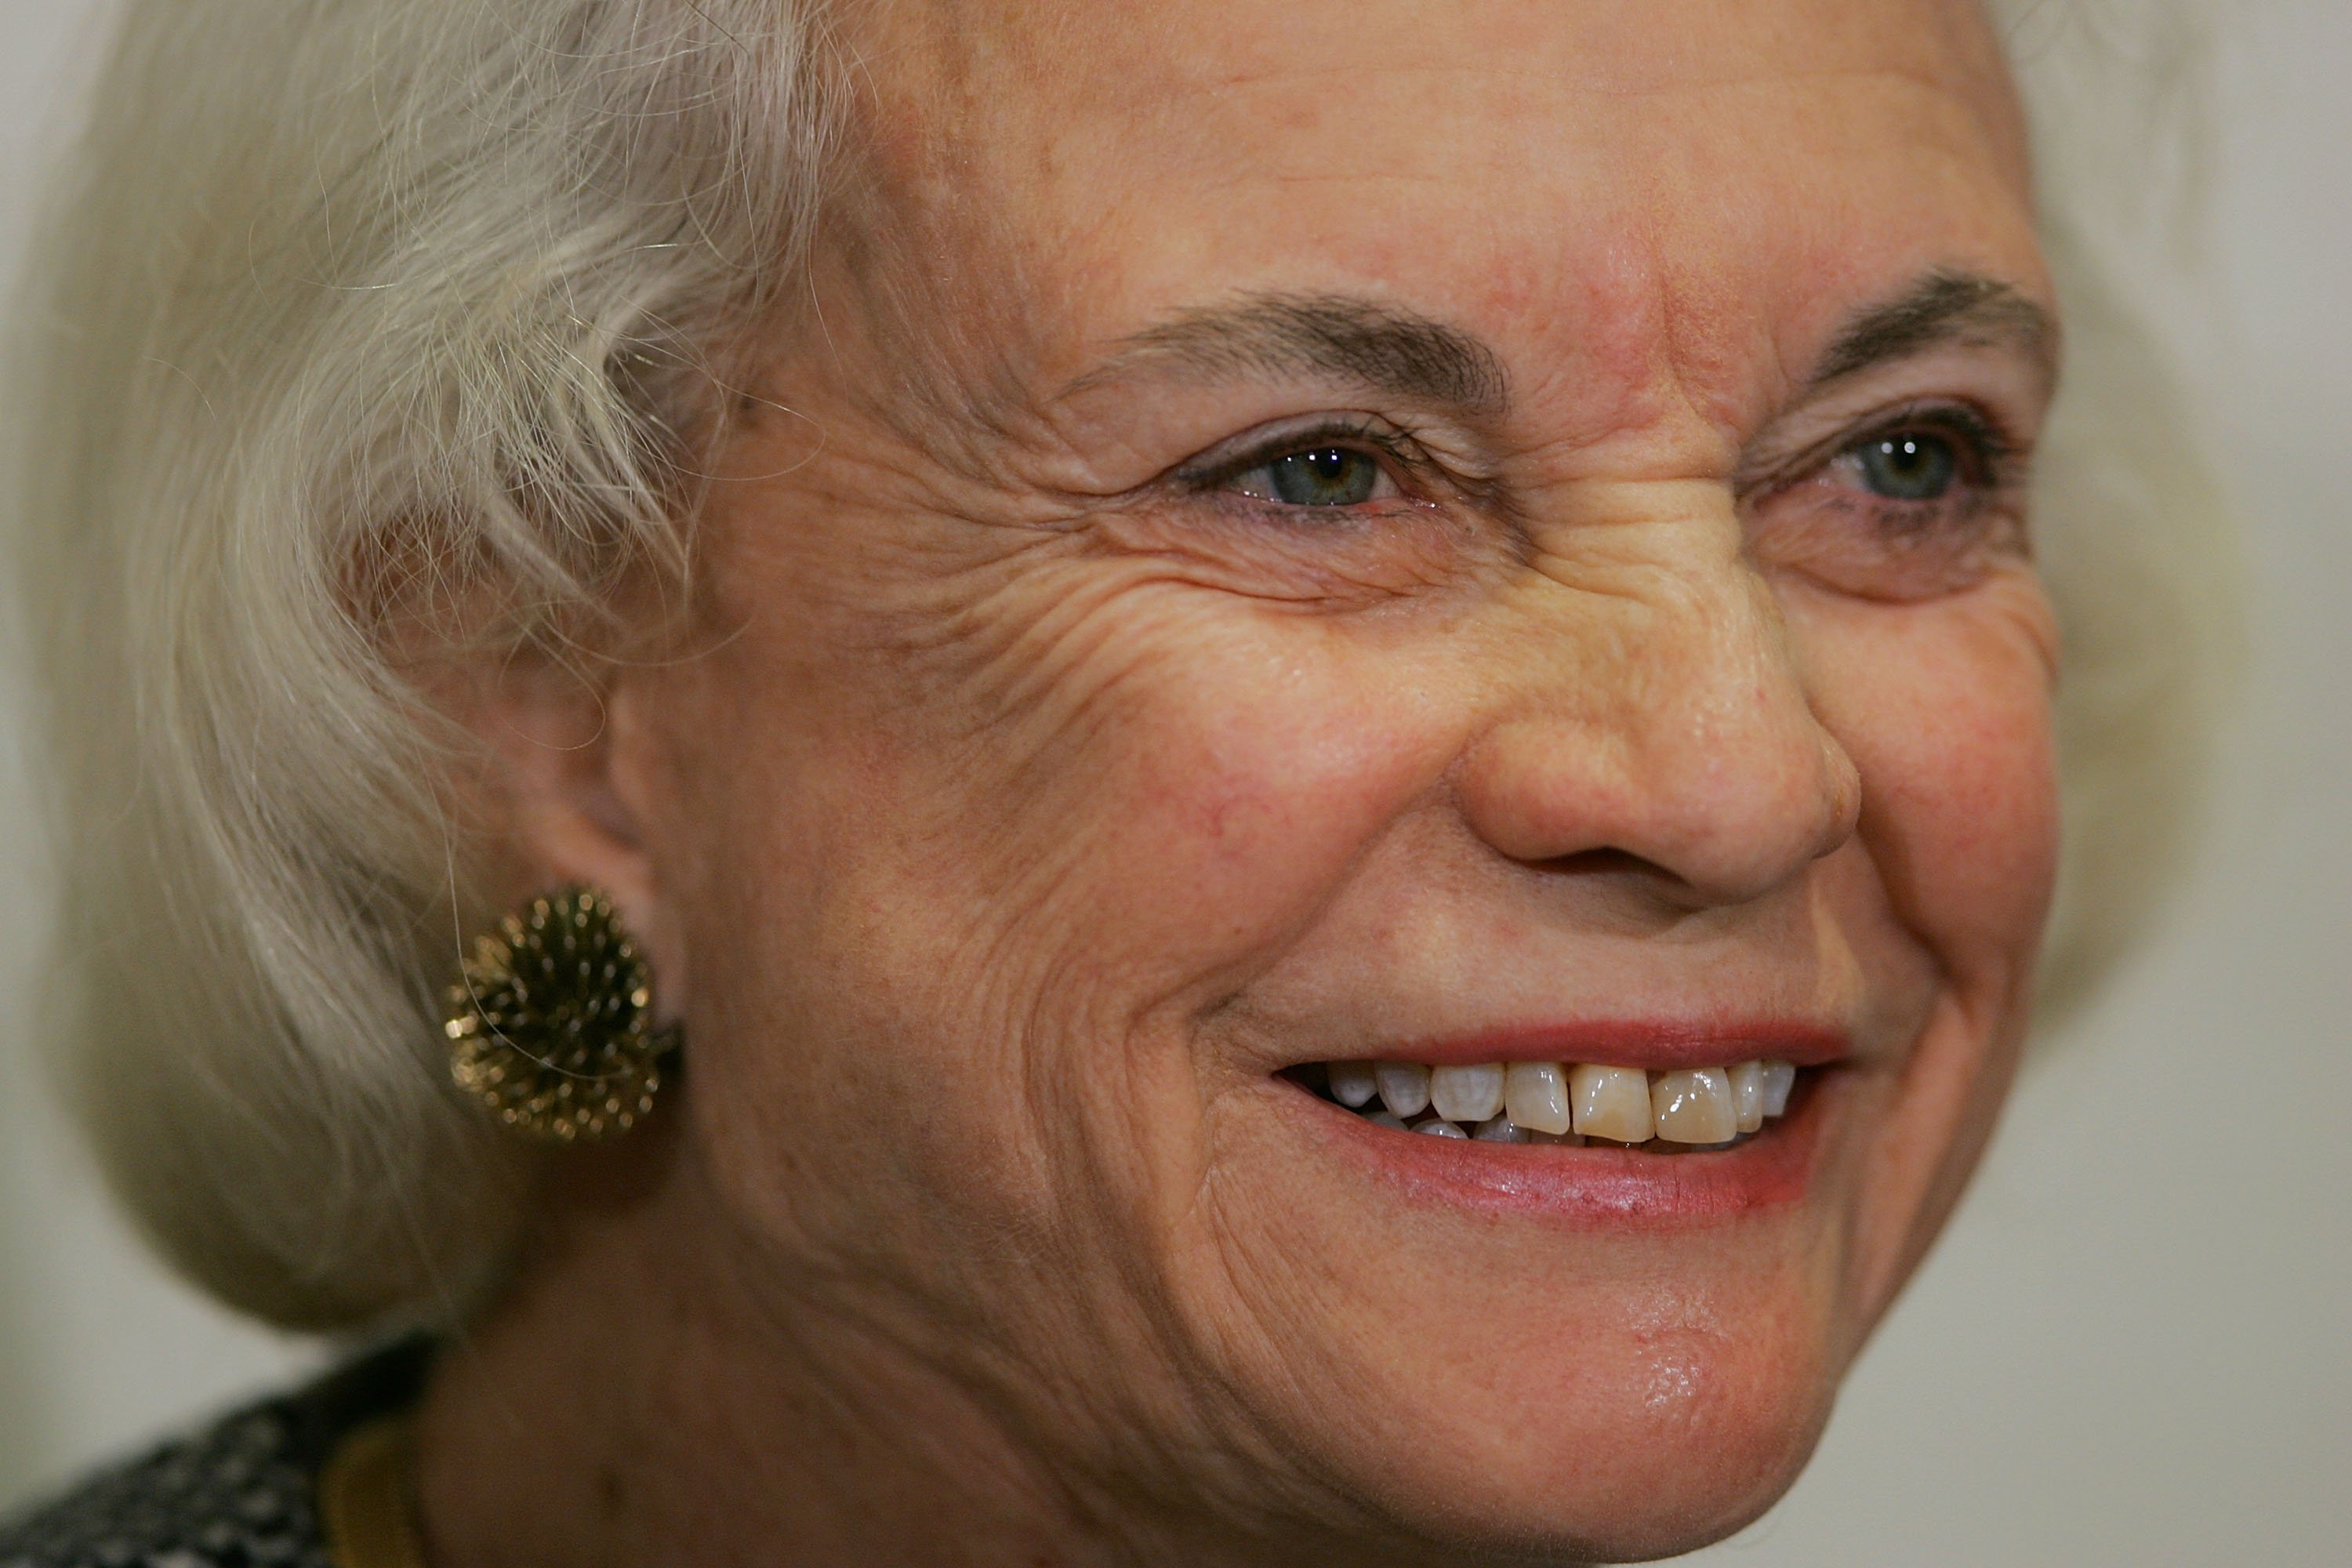 U.S. Supreme Court Justice Sandra Day O'Connor at the Moultrie Courthouse in Washington, DC | Photo: Getty Images